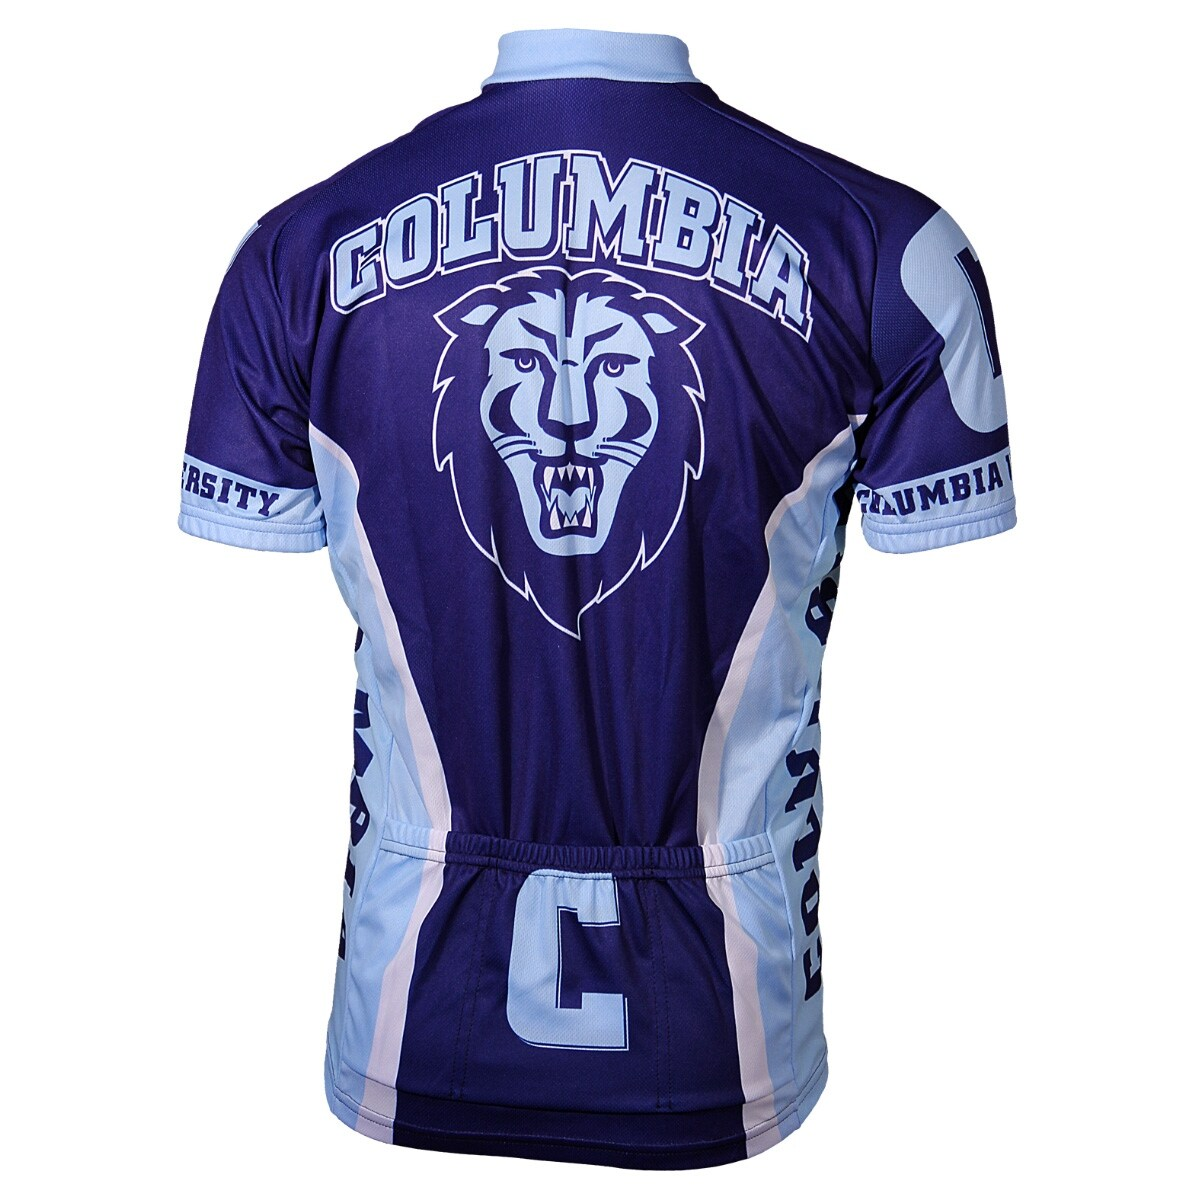 huge selection of 7bc5b fb177 Adrenaline Promotions Columbia University Lions Cycling Jersey - columbia  university lions